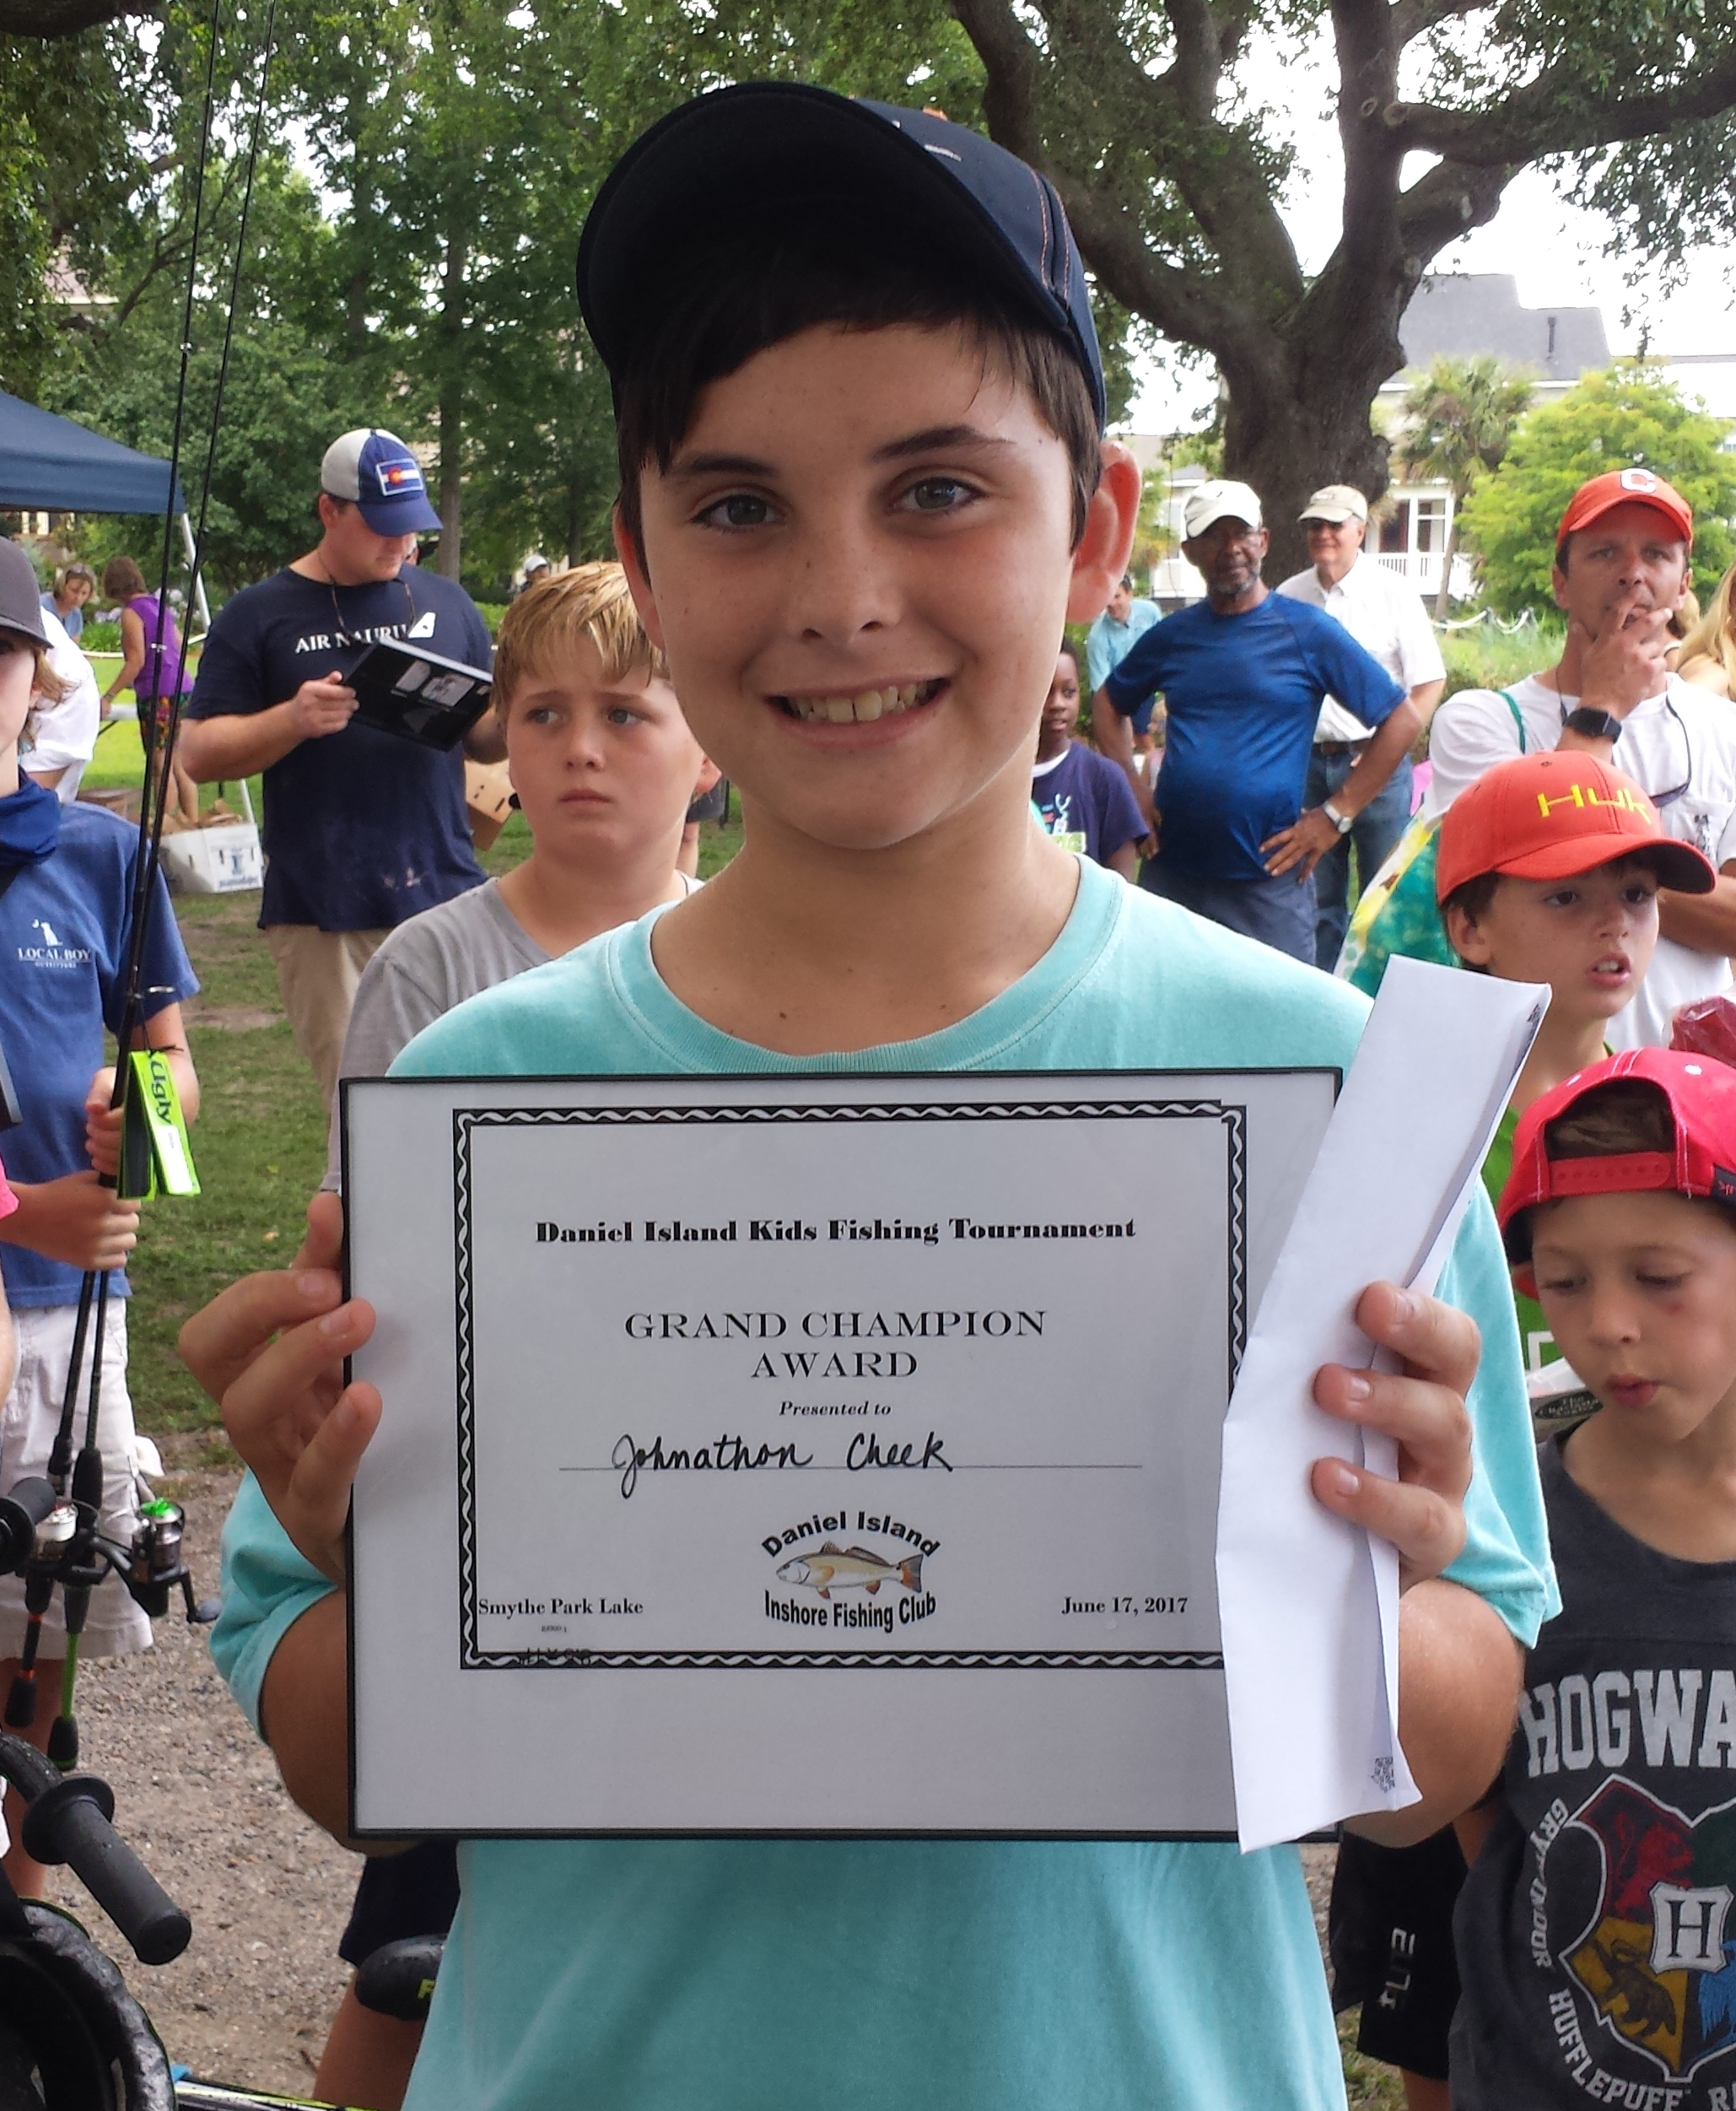 The Grand Champion of the 7th Annual Kids' Fishing Tournament was Jonathon Cheek. He caught the longest fish in the three species categories of Largemouth Bass, Panfish and Mullet by being the first to reel in a 15.5 inch bass.